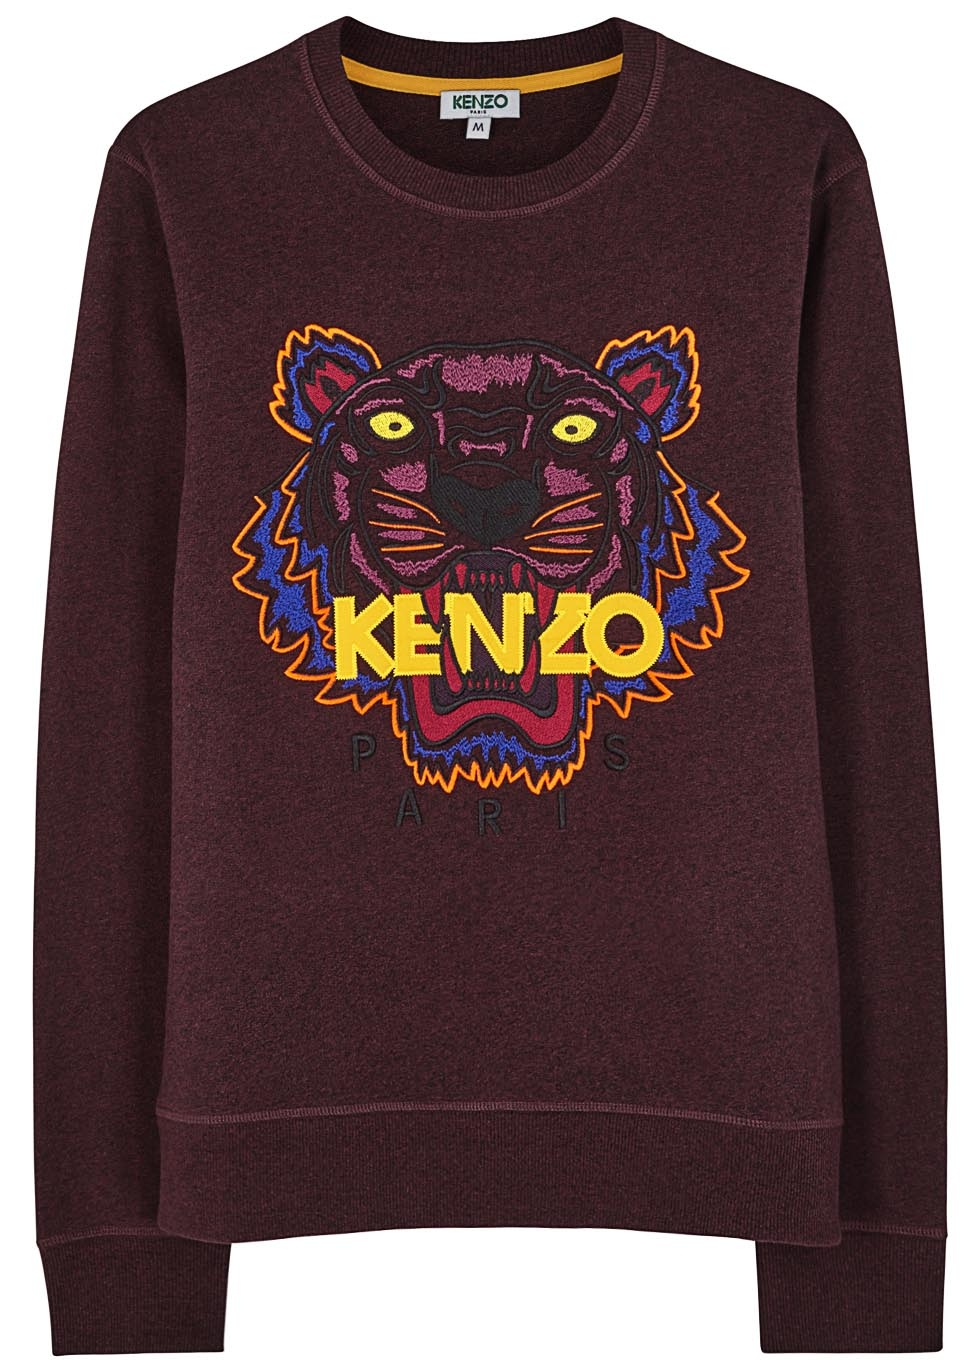 a8c28e2e244c5 KENZO Burgundy Embroidered Tiger Sweatshirt in Purple for Men - Lyst